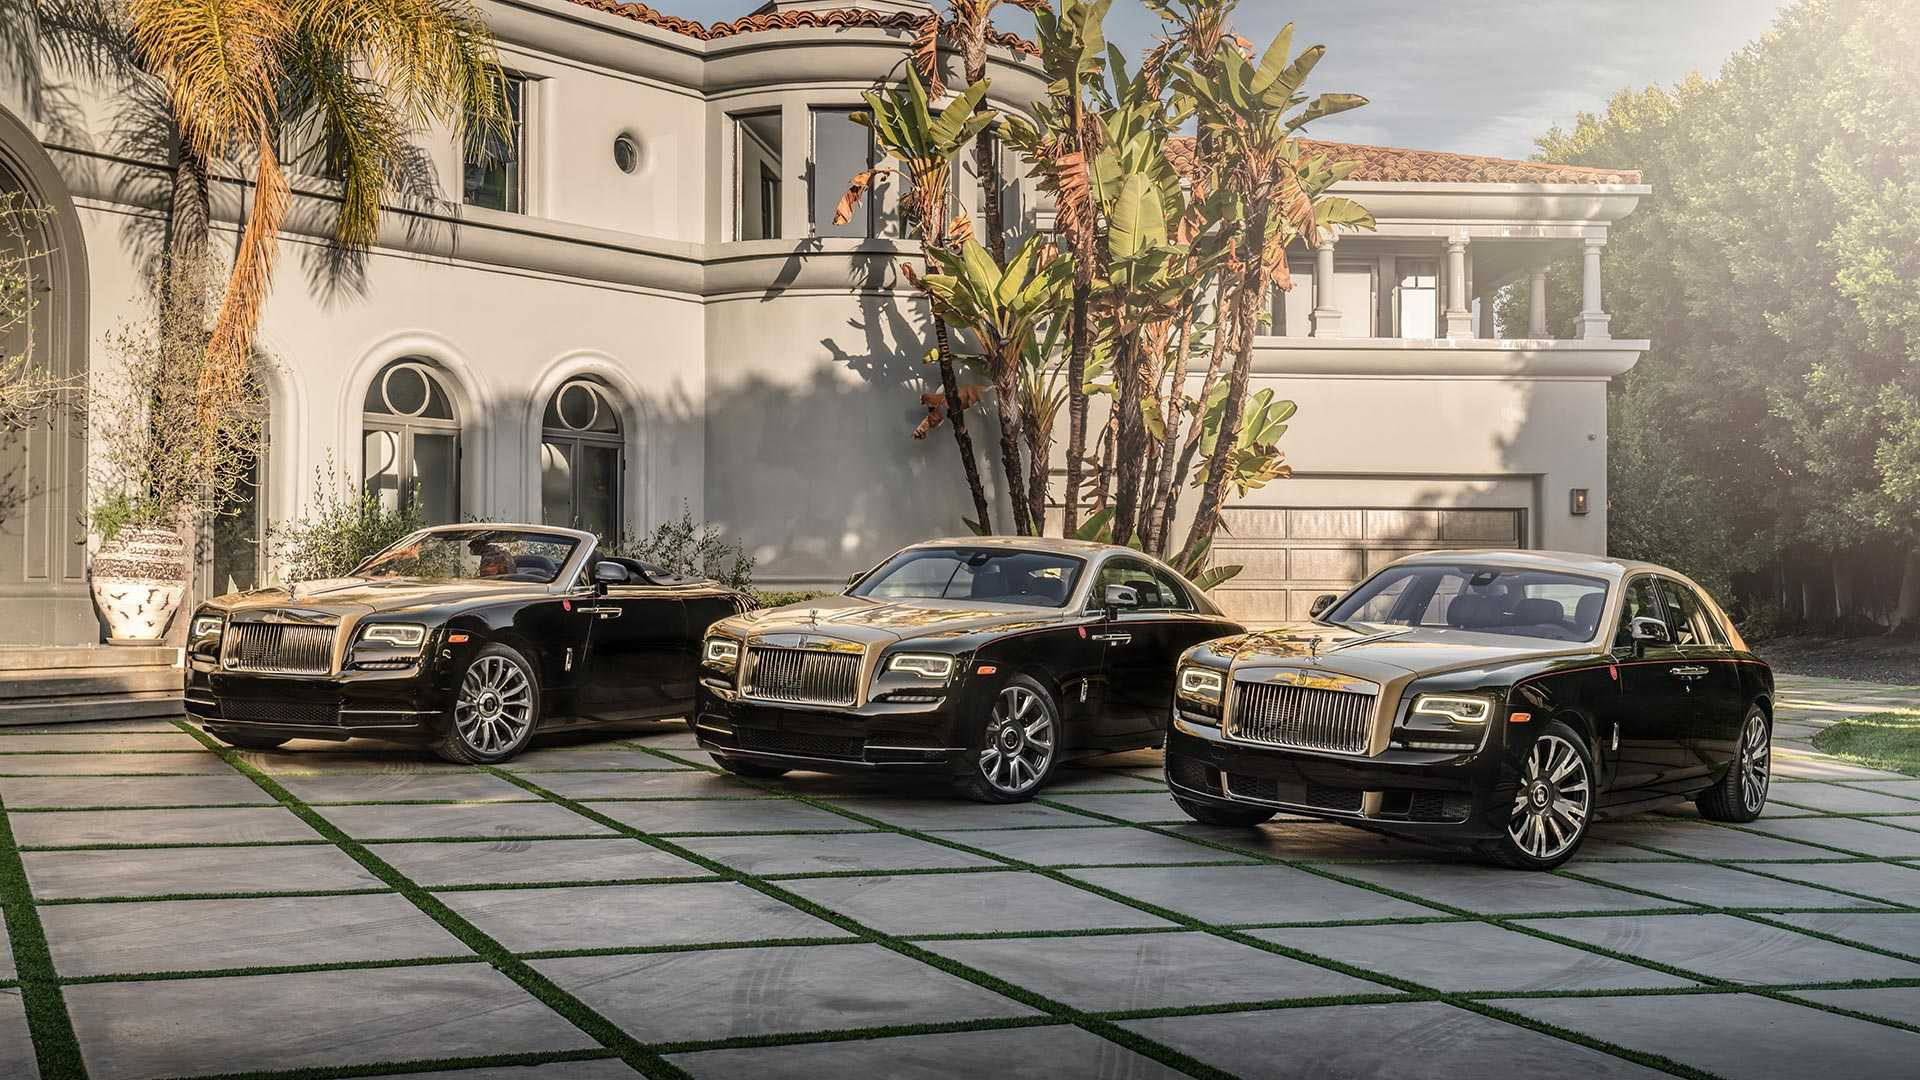 year-of-the-pig-rolls-royces